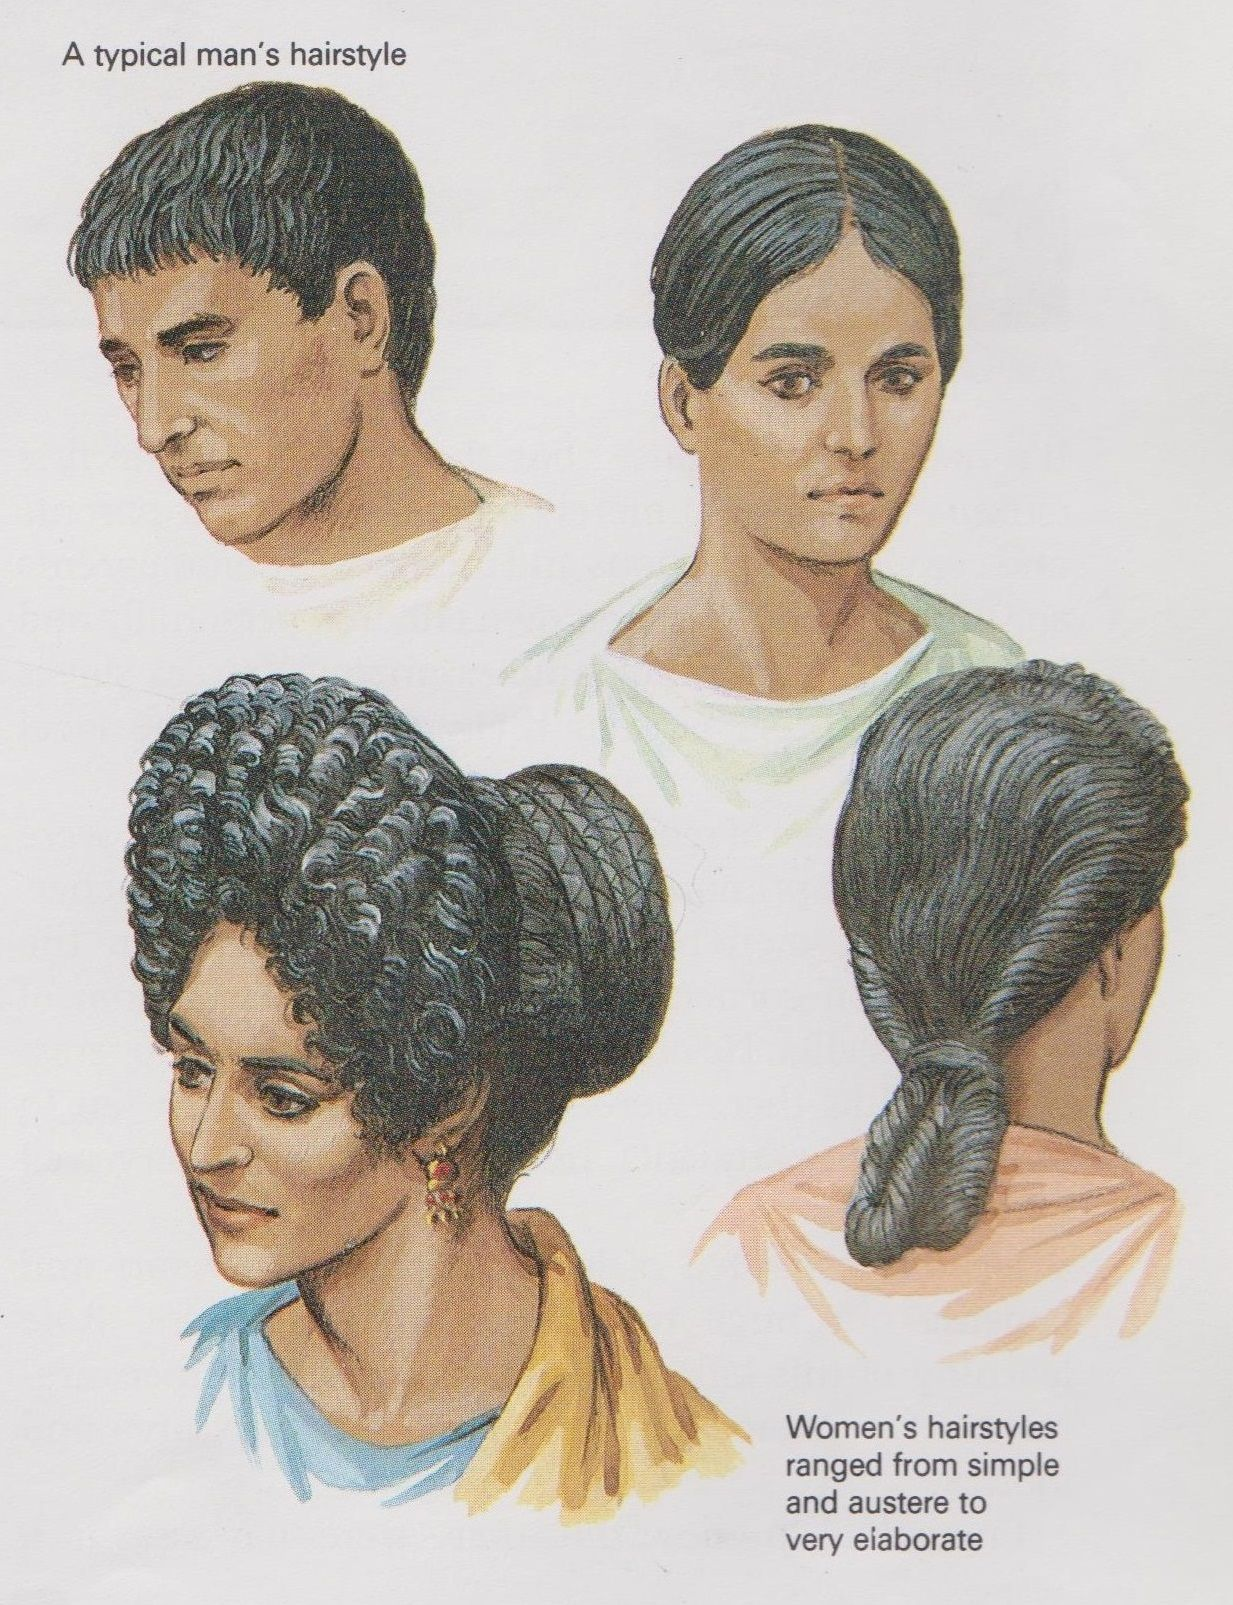 ancient roman hairstyles (peter connolly/user: aethon